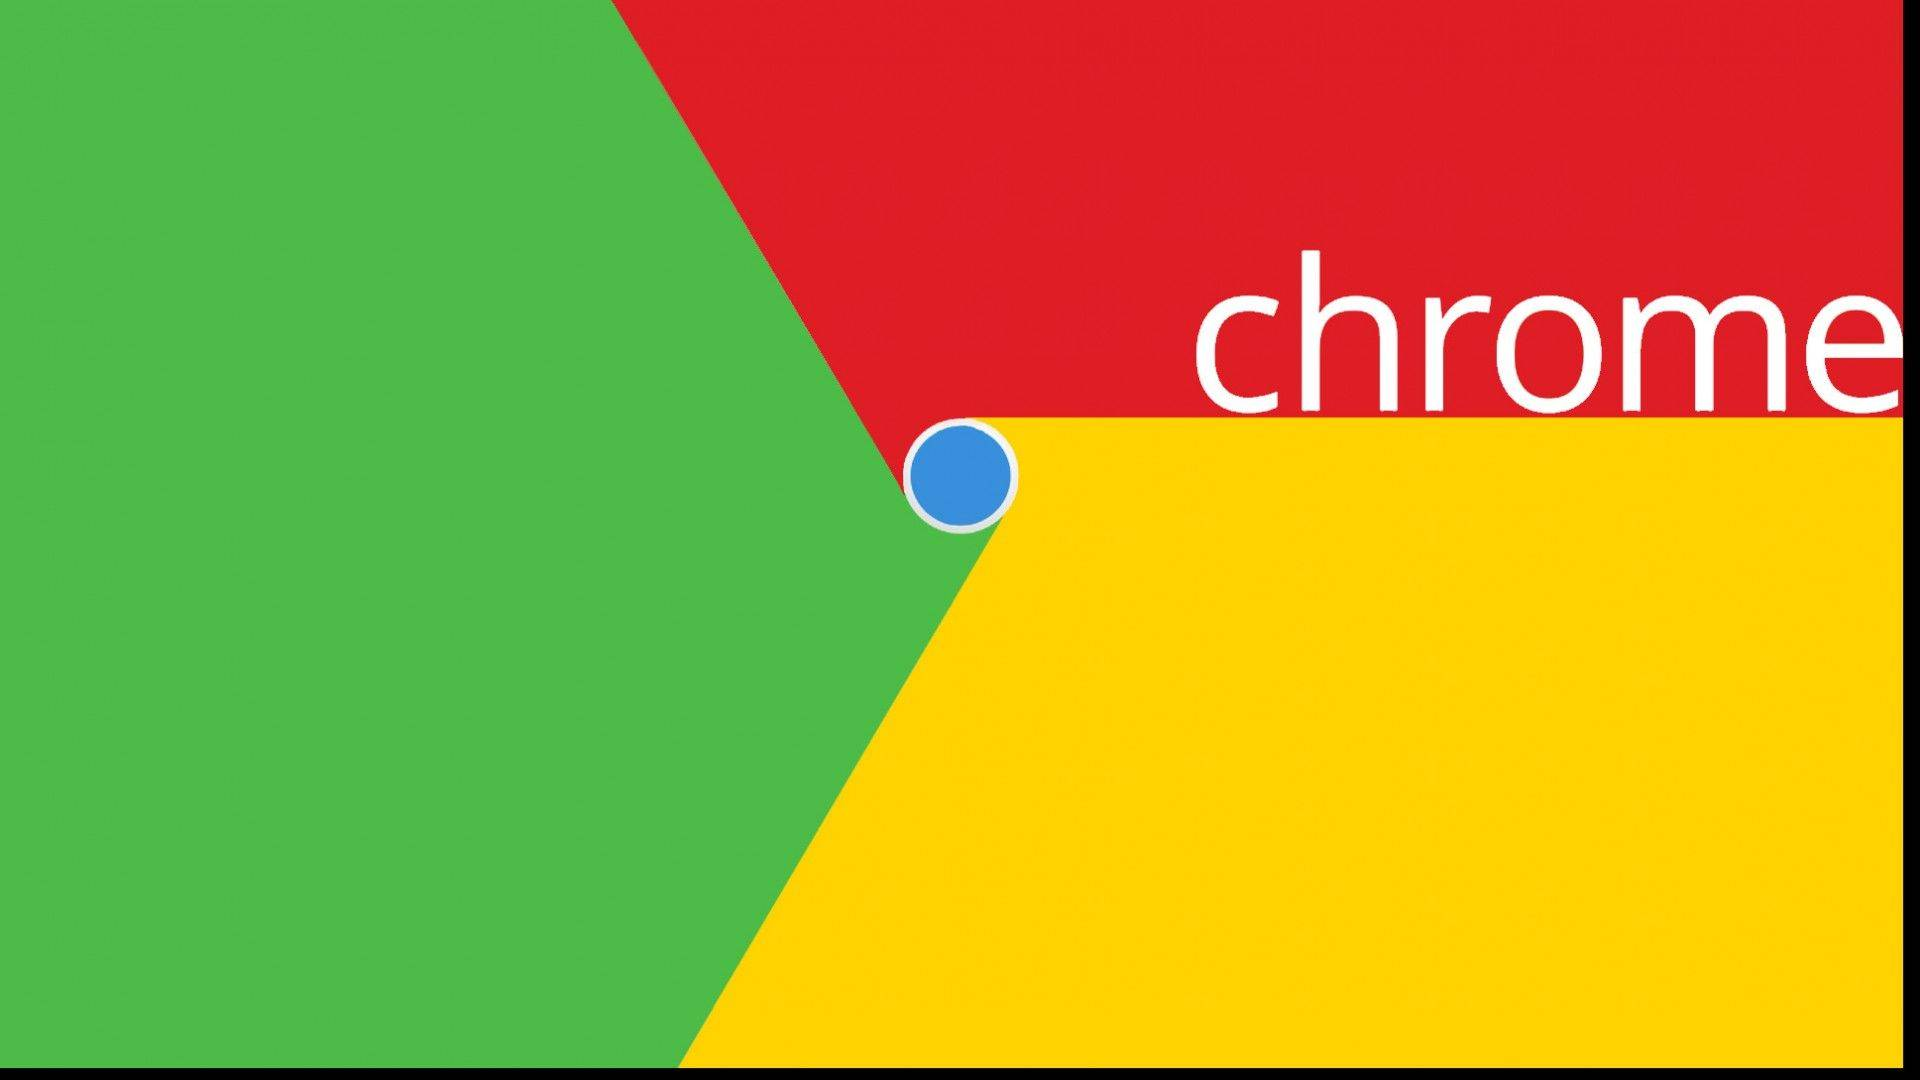 Google Chrome Wallpapers 48 Wallpapers – Adorable Wallpapers